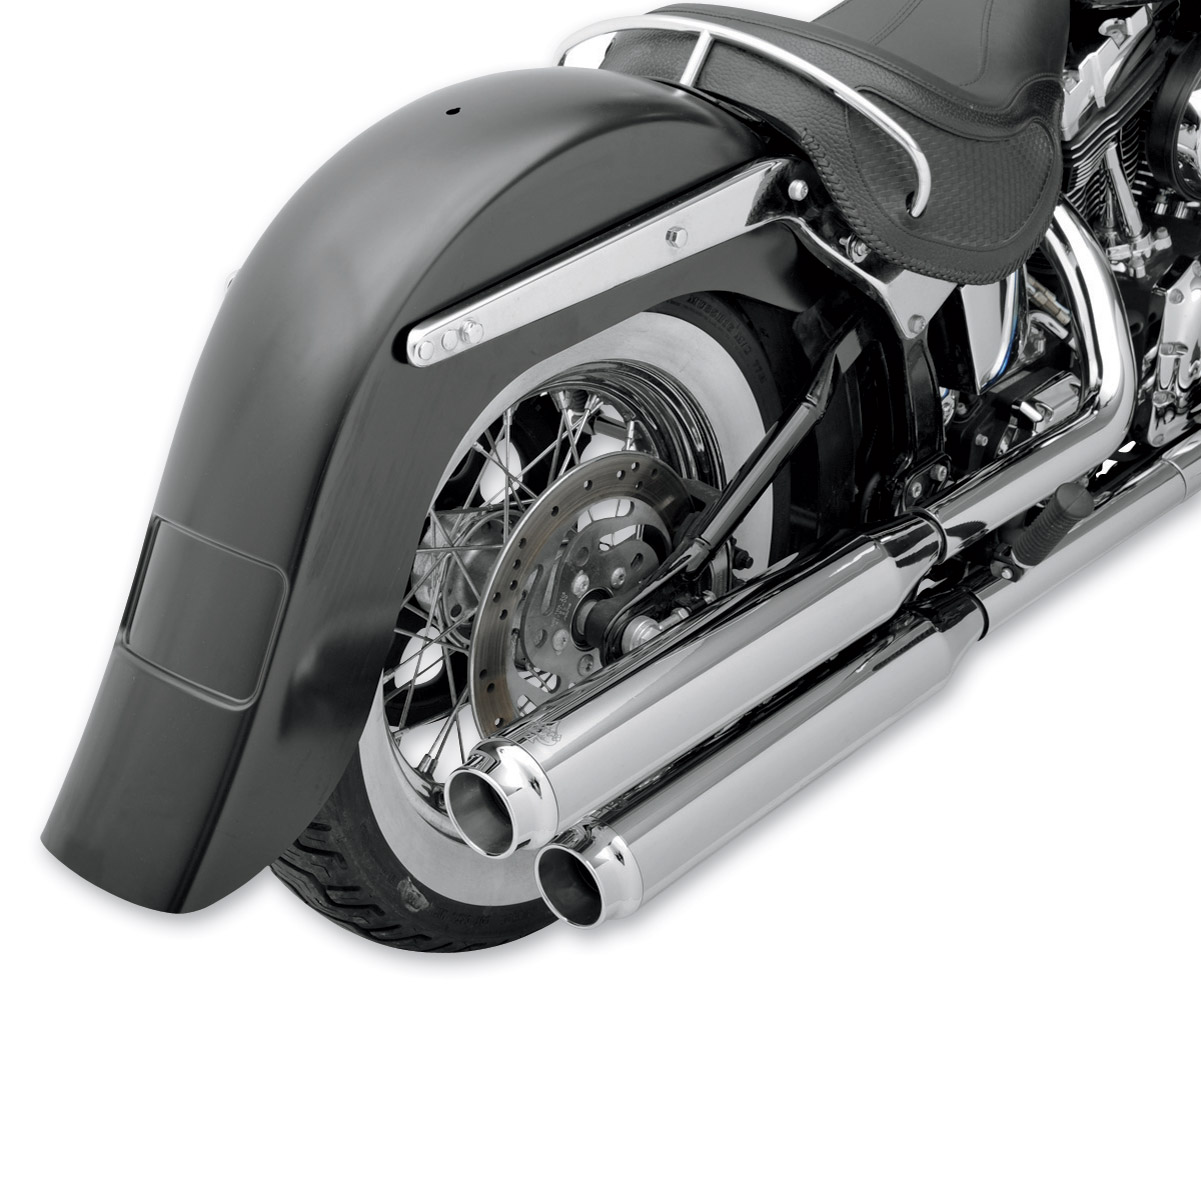 Motorcycle Fenders Jp Cycles 1983 Honda Shadow Bagger Klock Werks Stretch Rear Fender With Frenched Plate Pocket